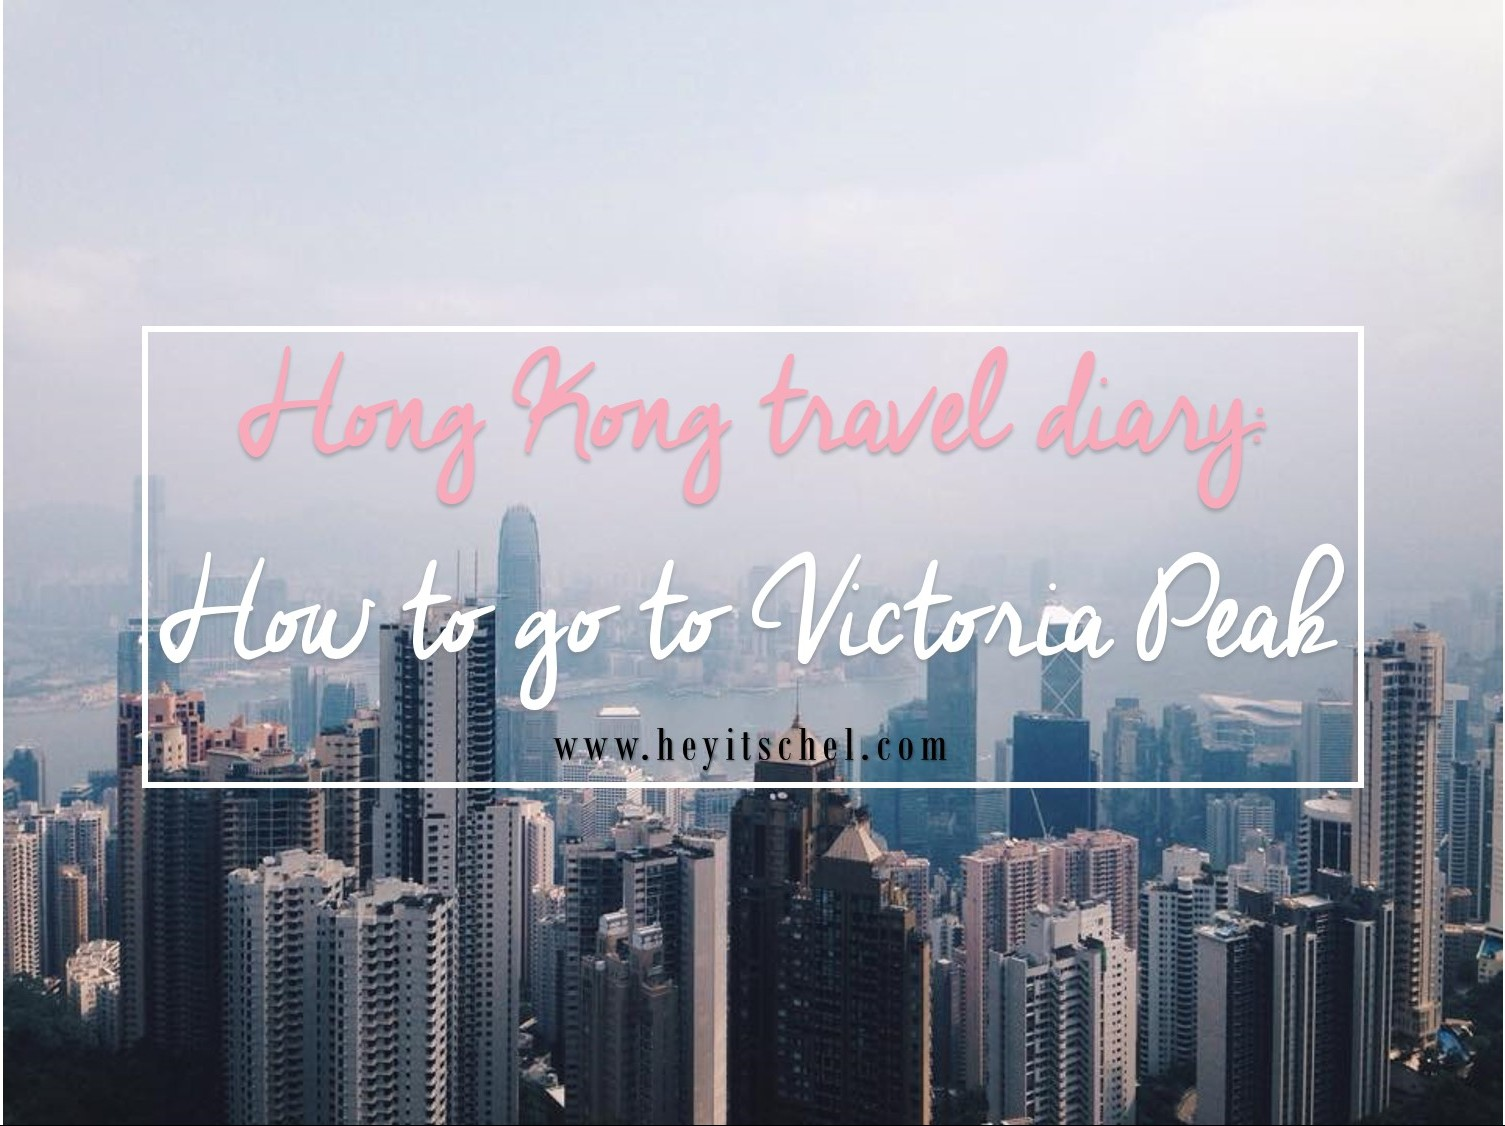 Hong Kong Travel Diary: How to go to The Peak